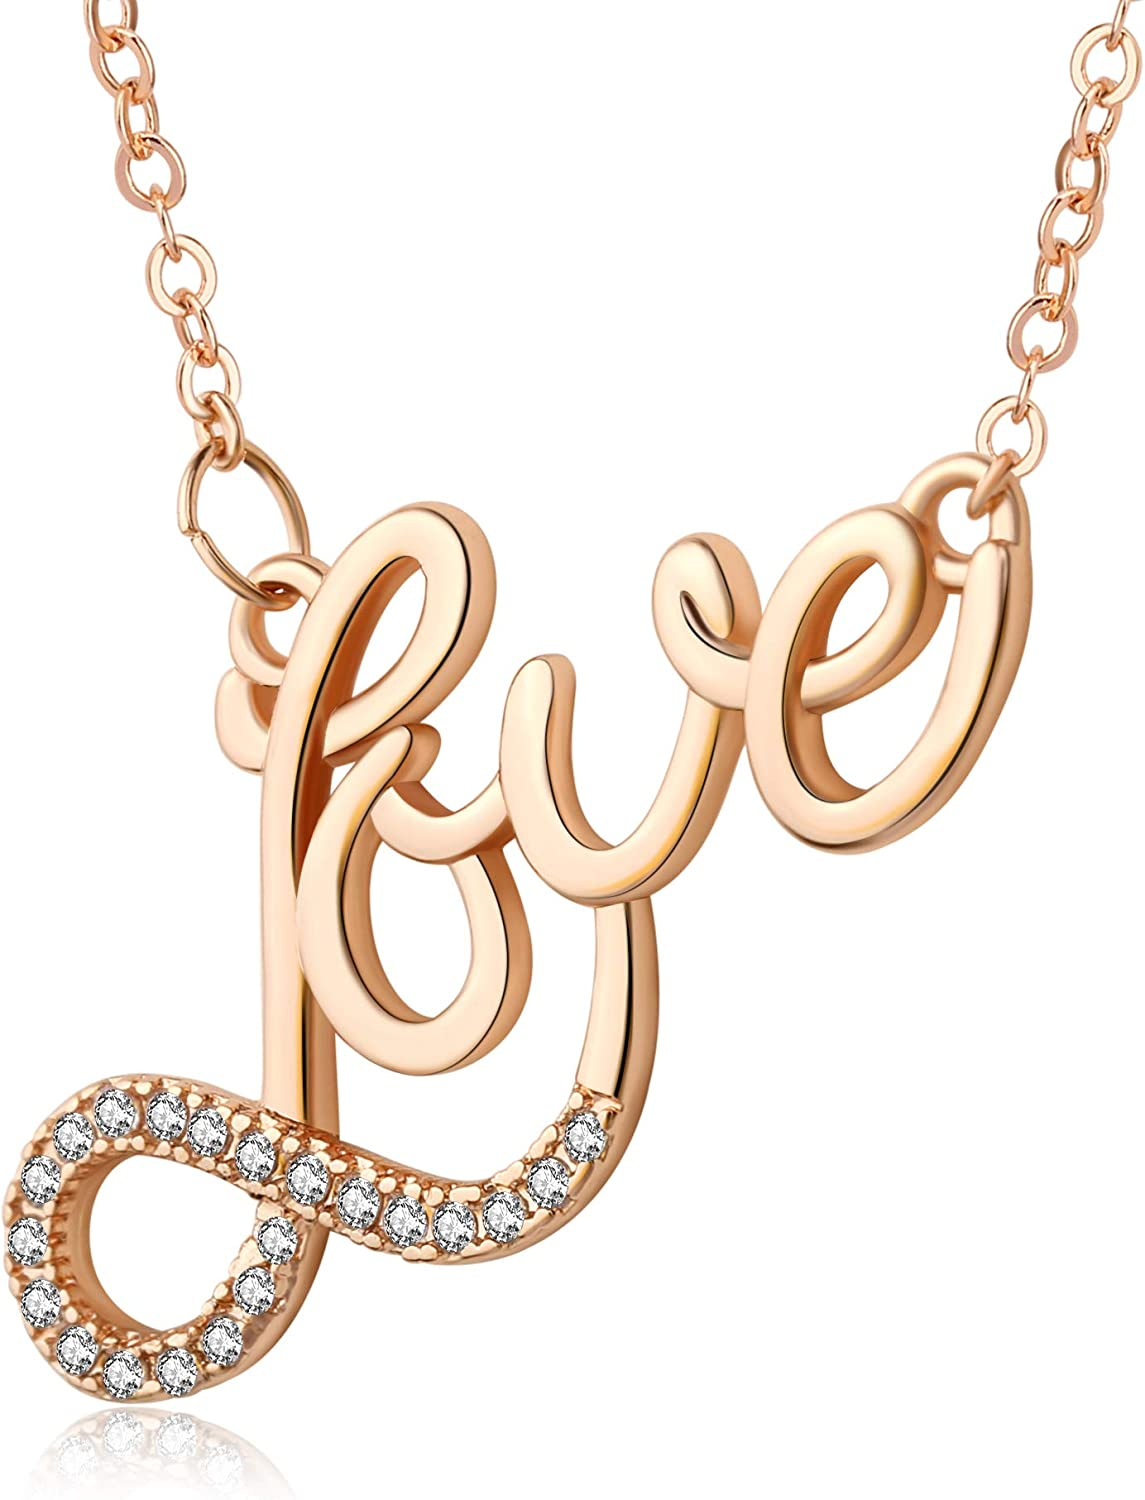 Kruckel Let me Love You Rose Shiny Sparkling Necklace Made with Zircon - NLS0050